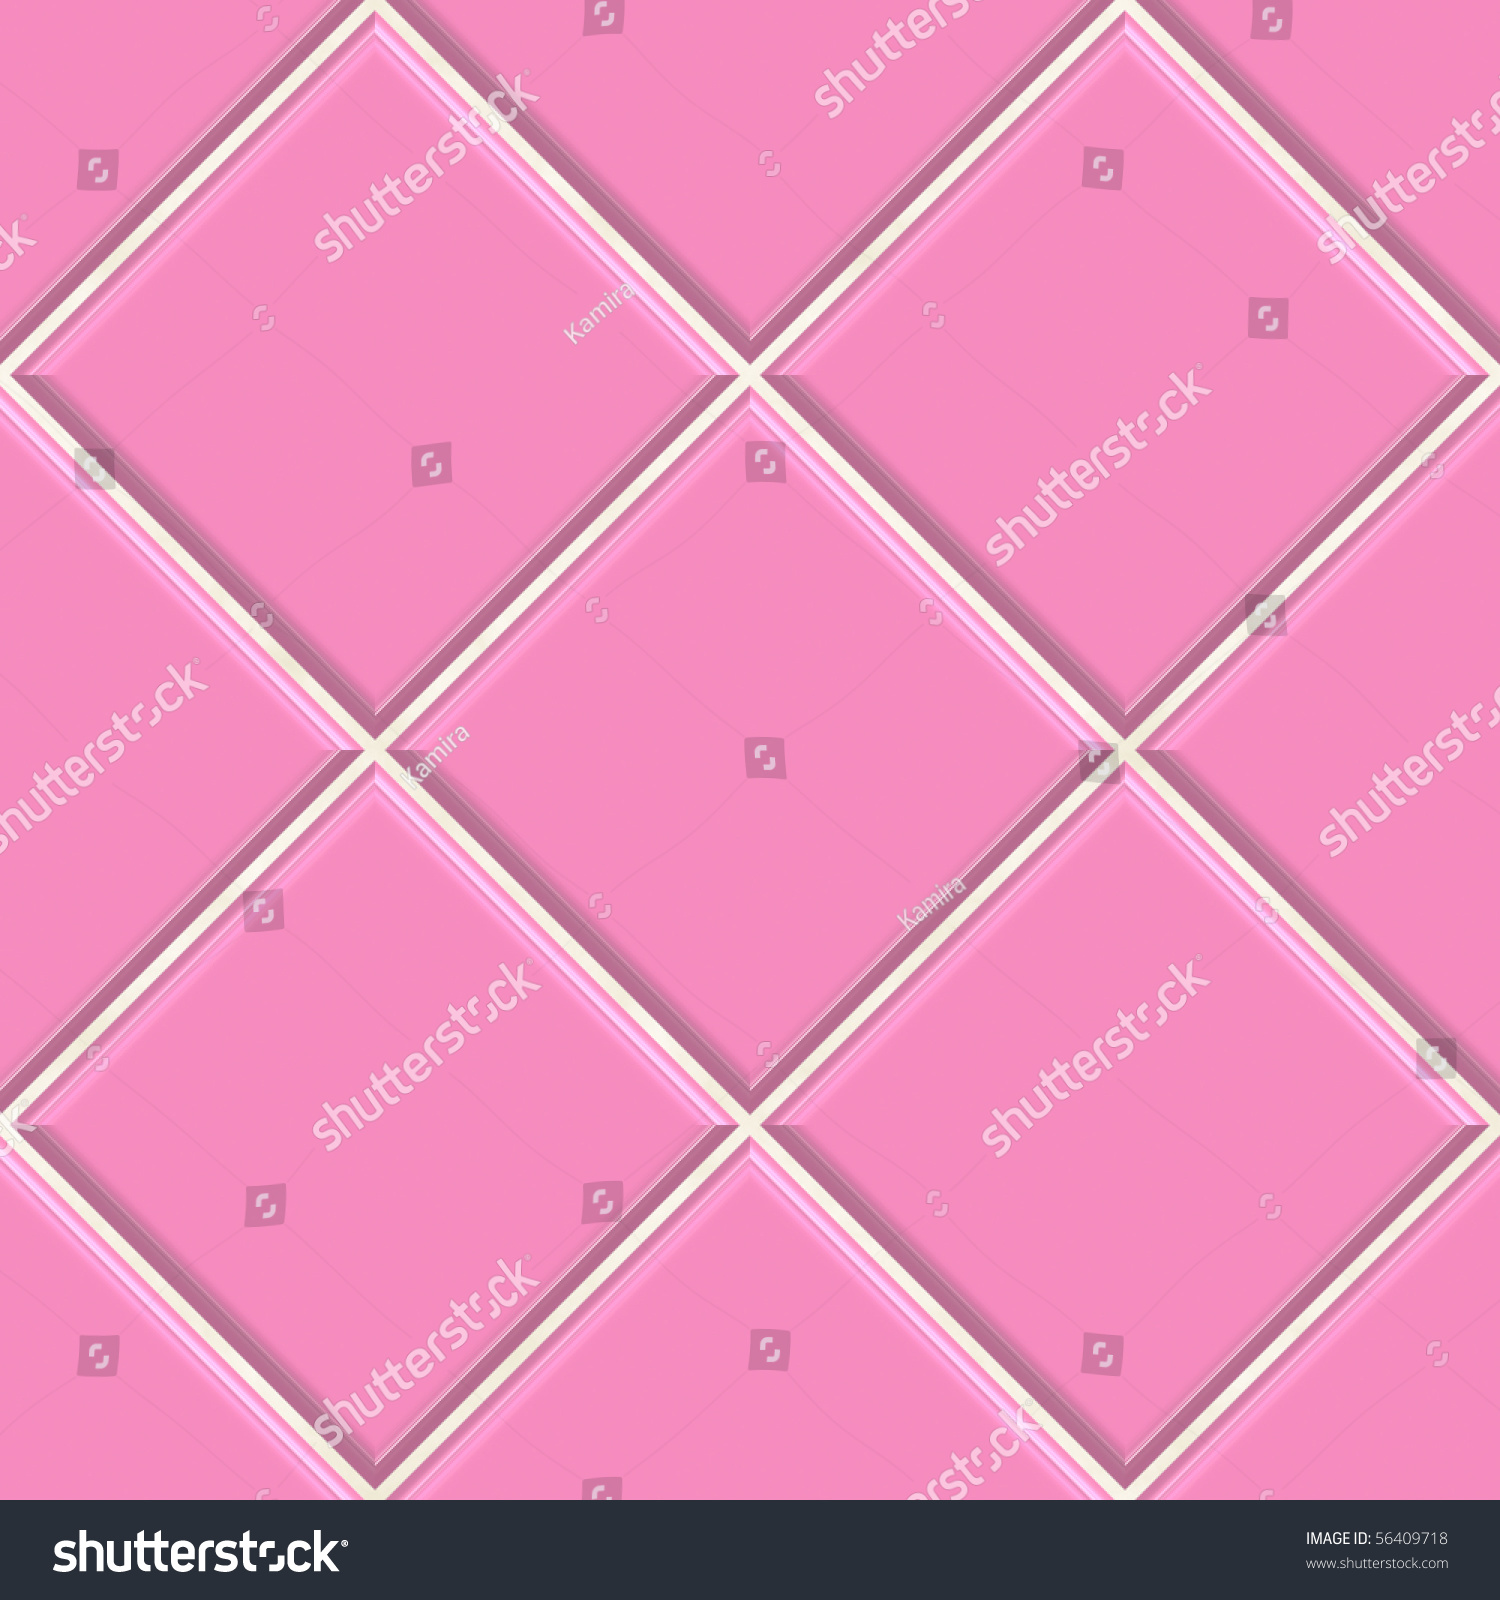 Seamless Pink Tiles Texture Background Kitchen Or Bathroom Concept